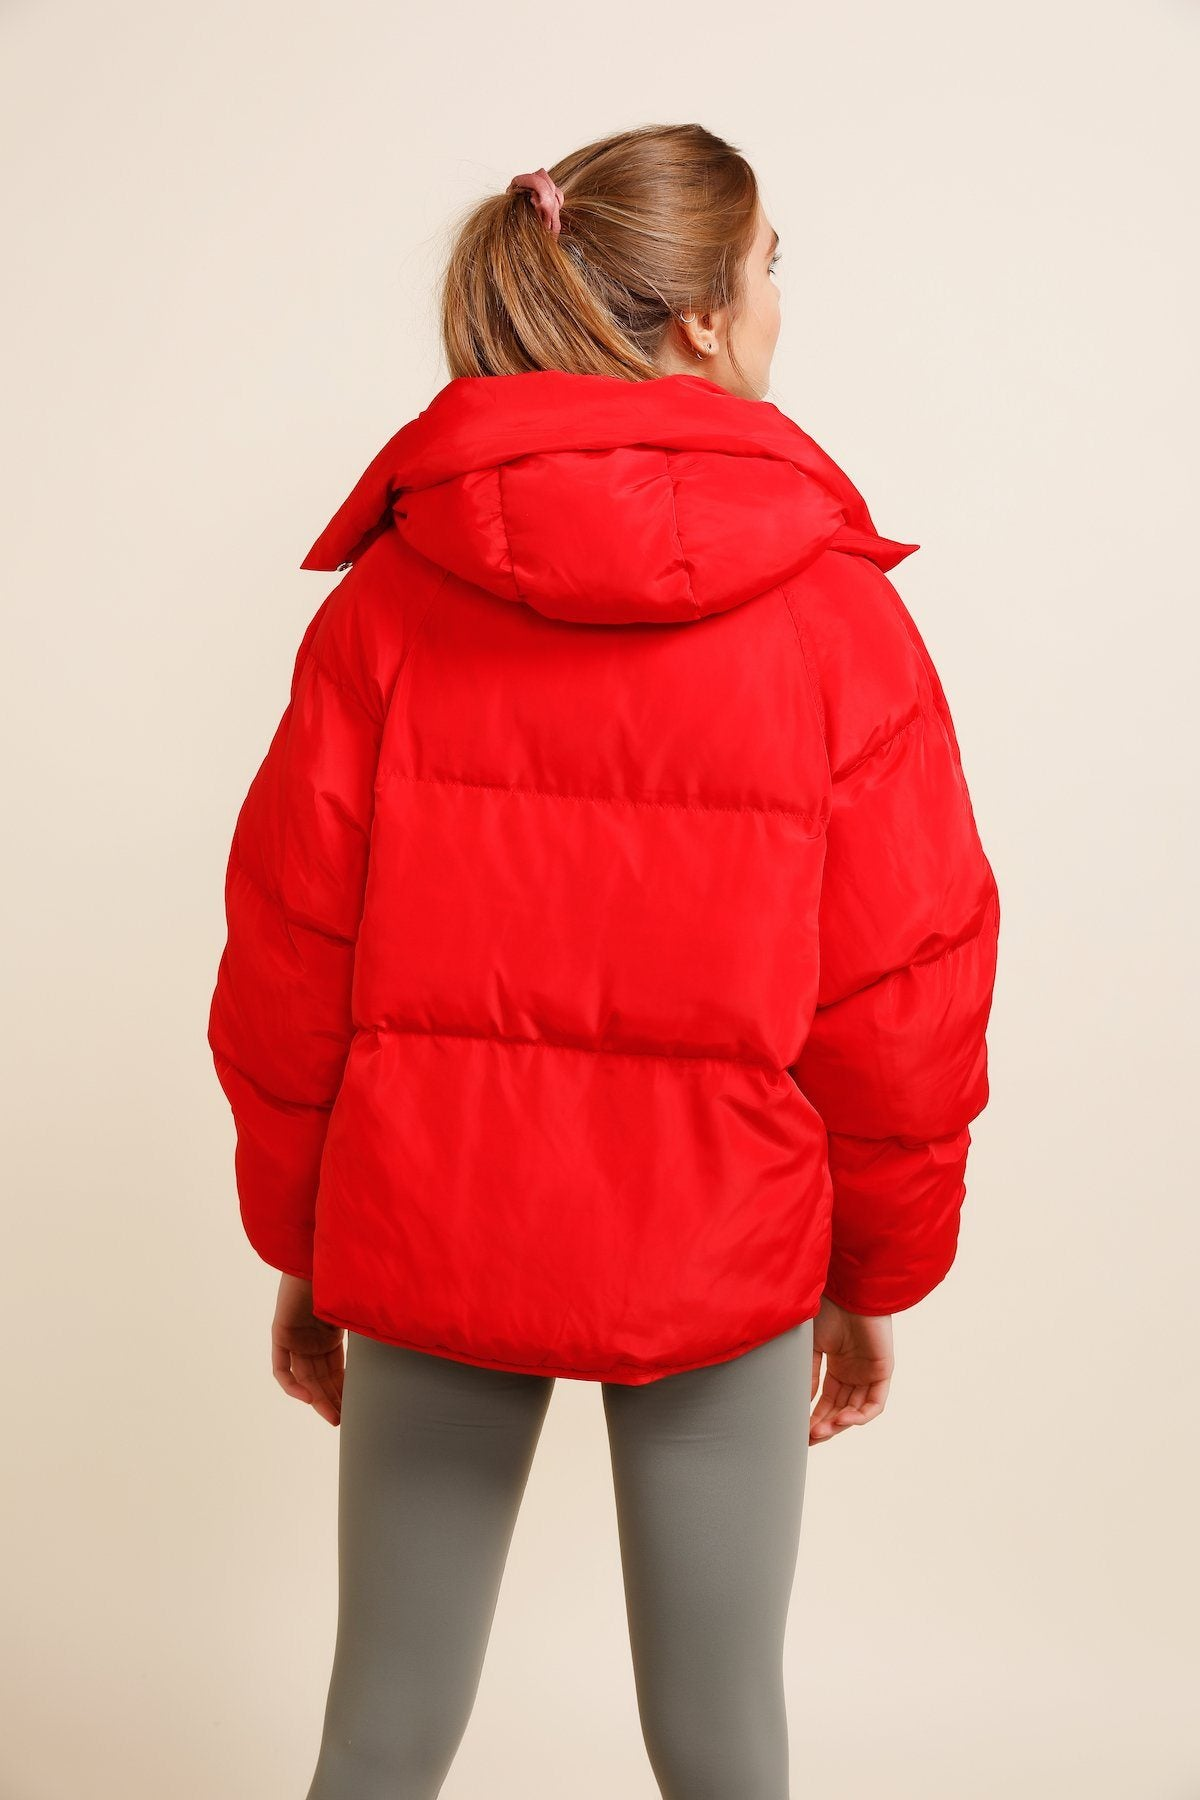 Pluto Puffer Jacket - Red *IN STOCK